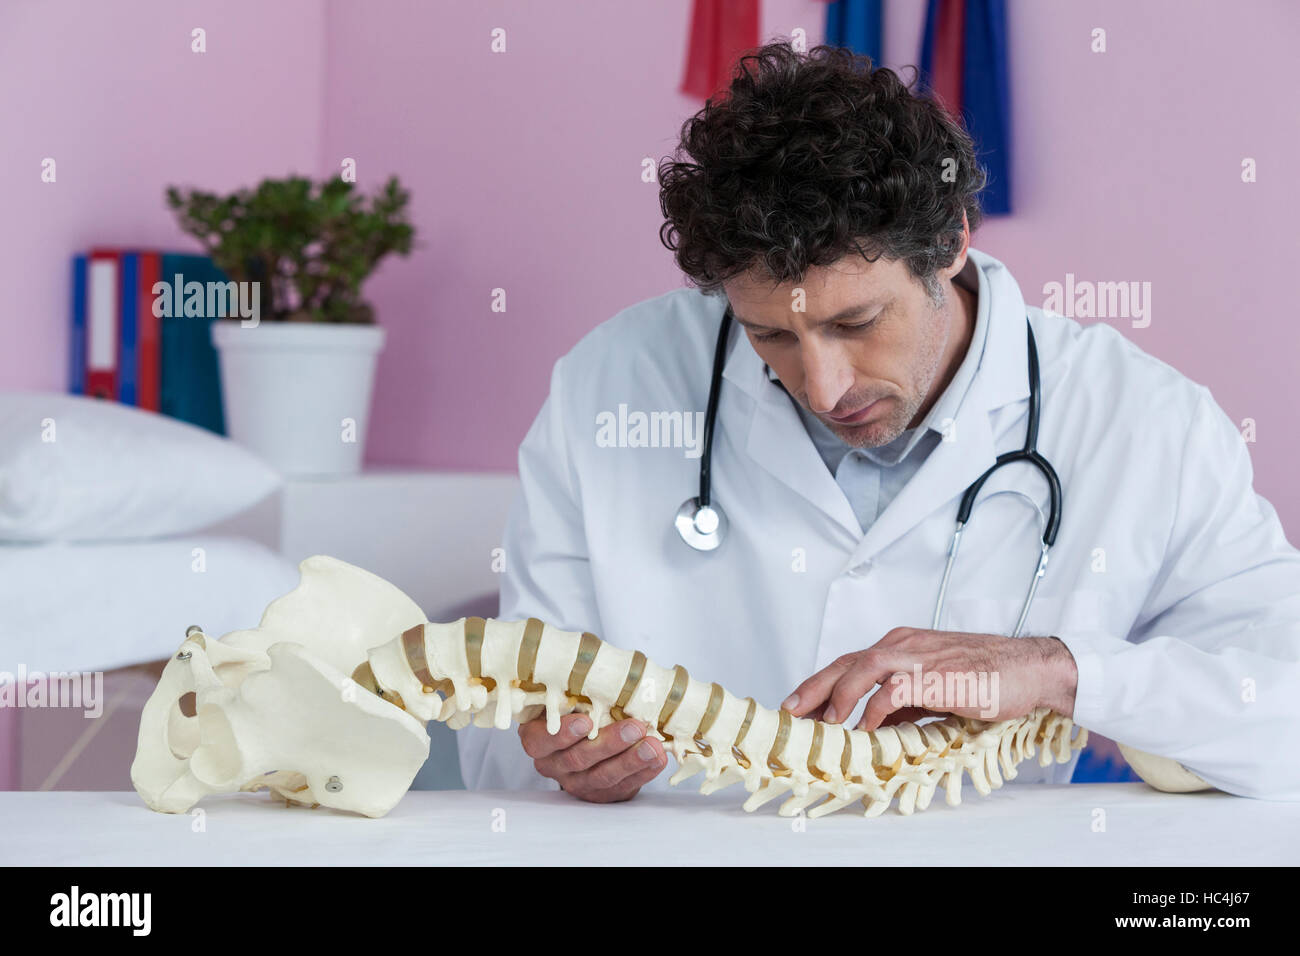 Physiotherapist examining a spine model - Stock Image